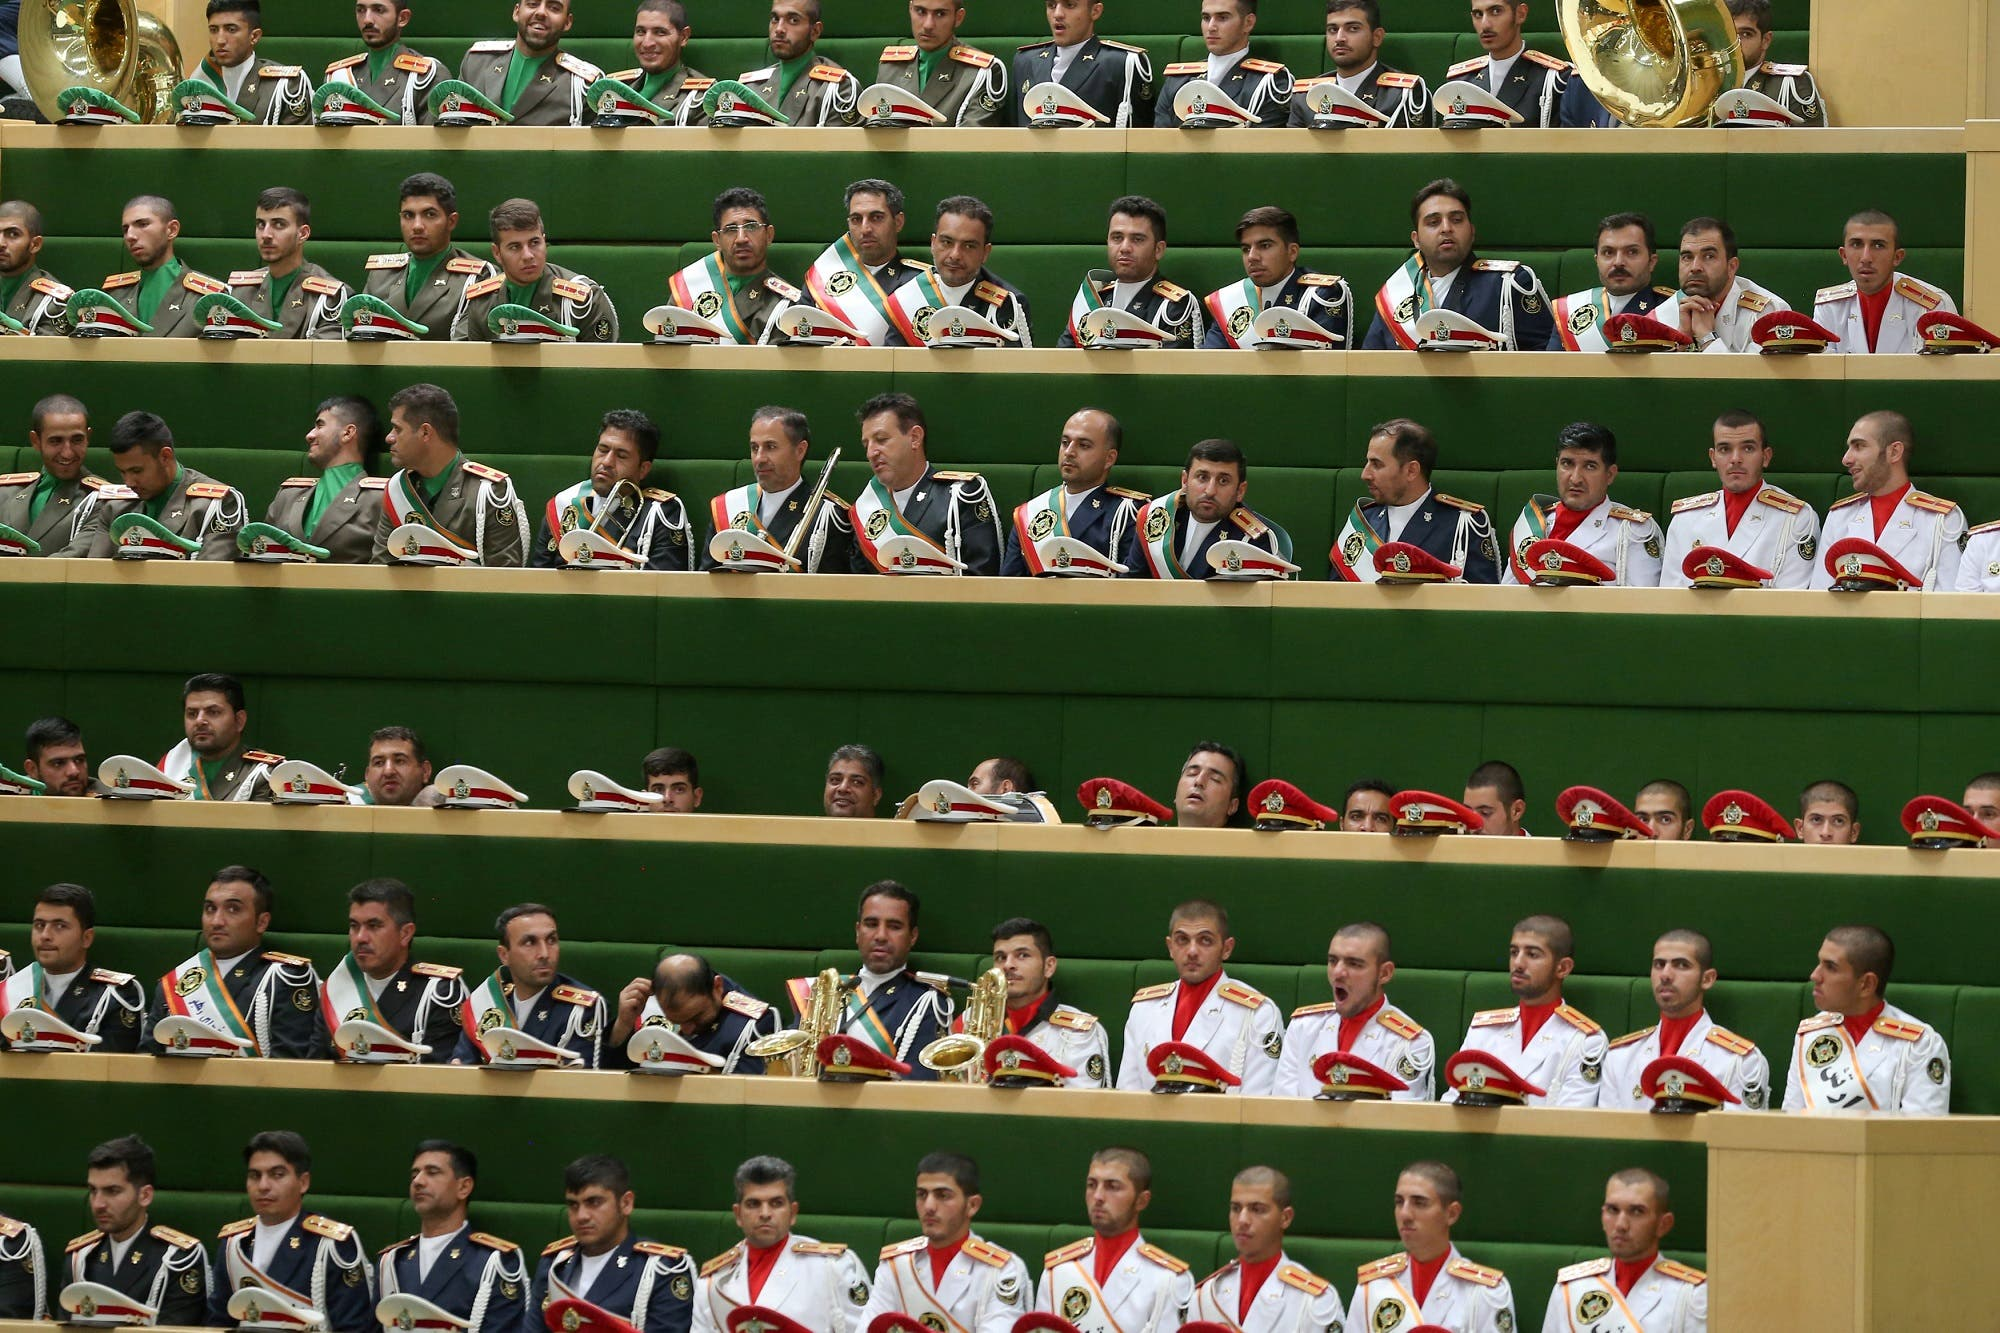 Iranian soldiers attend the swearing-in ceremony for Iranian president Hassan Rouhani for a further term, at the parliament in Tehran, Iran, August 5, 2017. (Reuters)